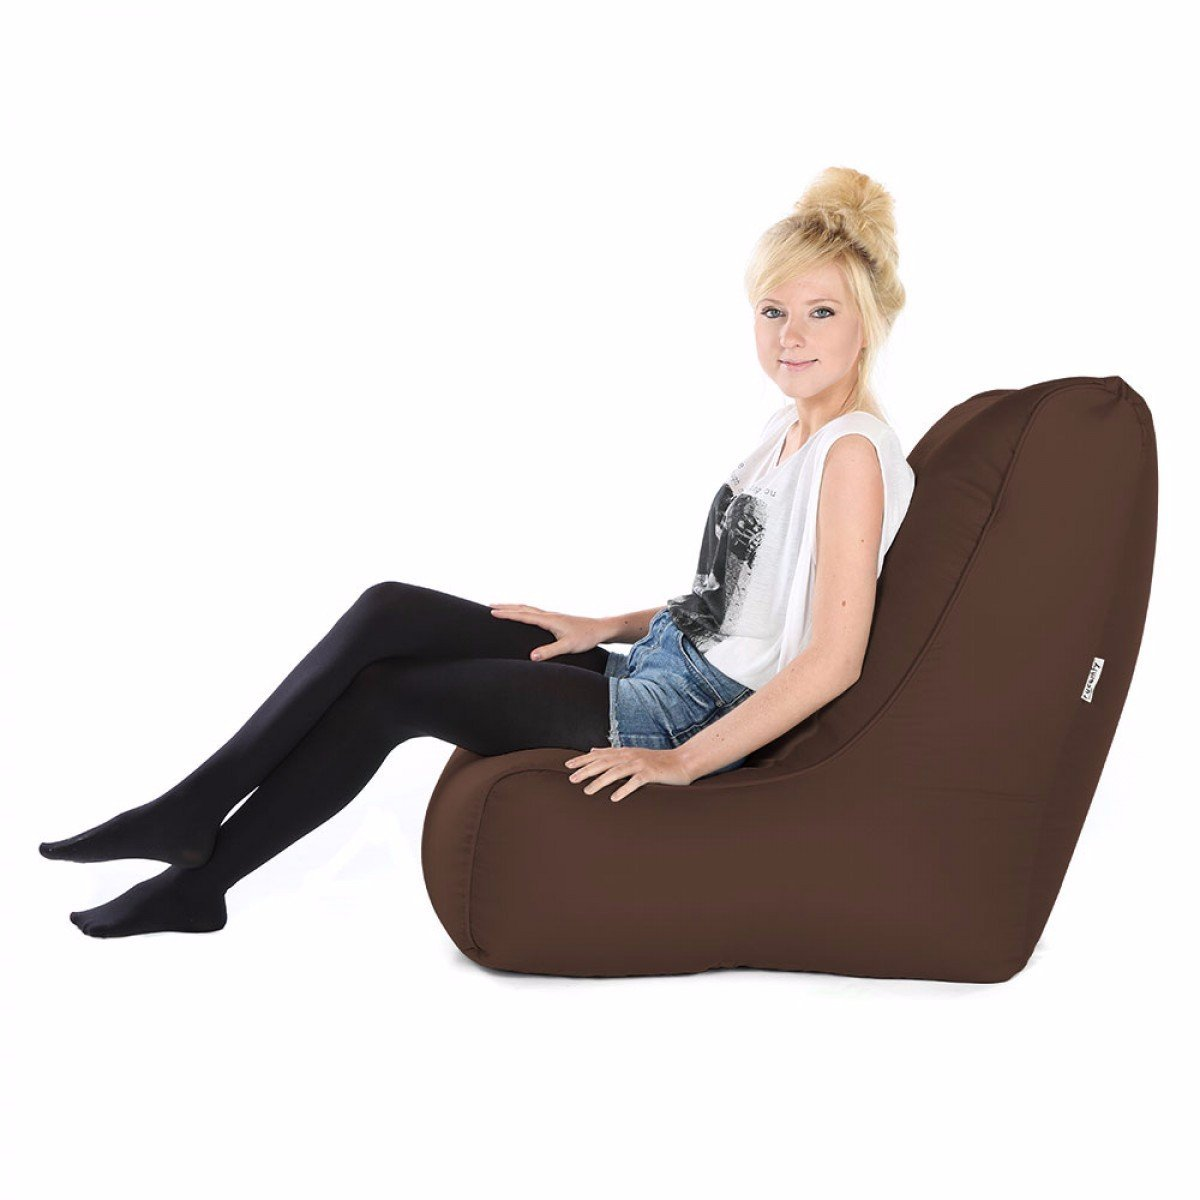 Taupe  rucomfy Bean sacs Confortable Chaise Solo Pouf Jaune